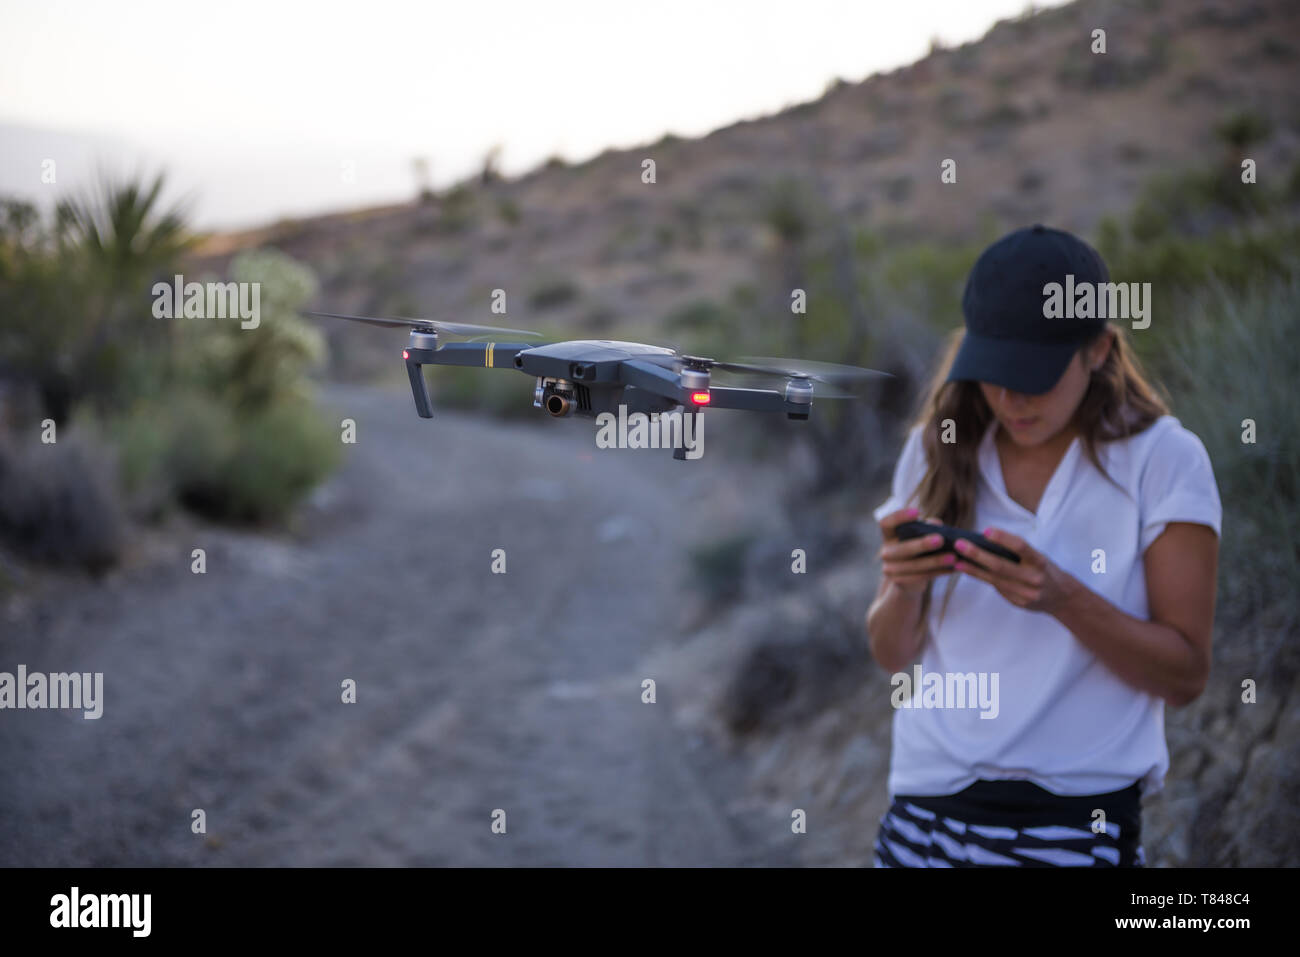 Woman operating drone (unmanned aerial vehicle) on rural dirt track - Stock Image